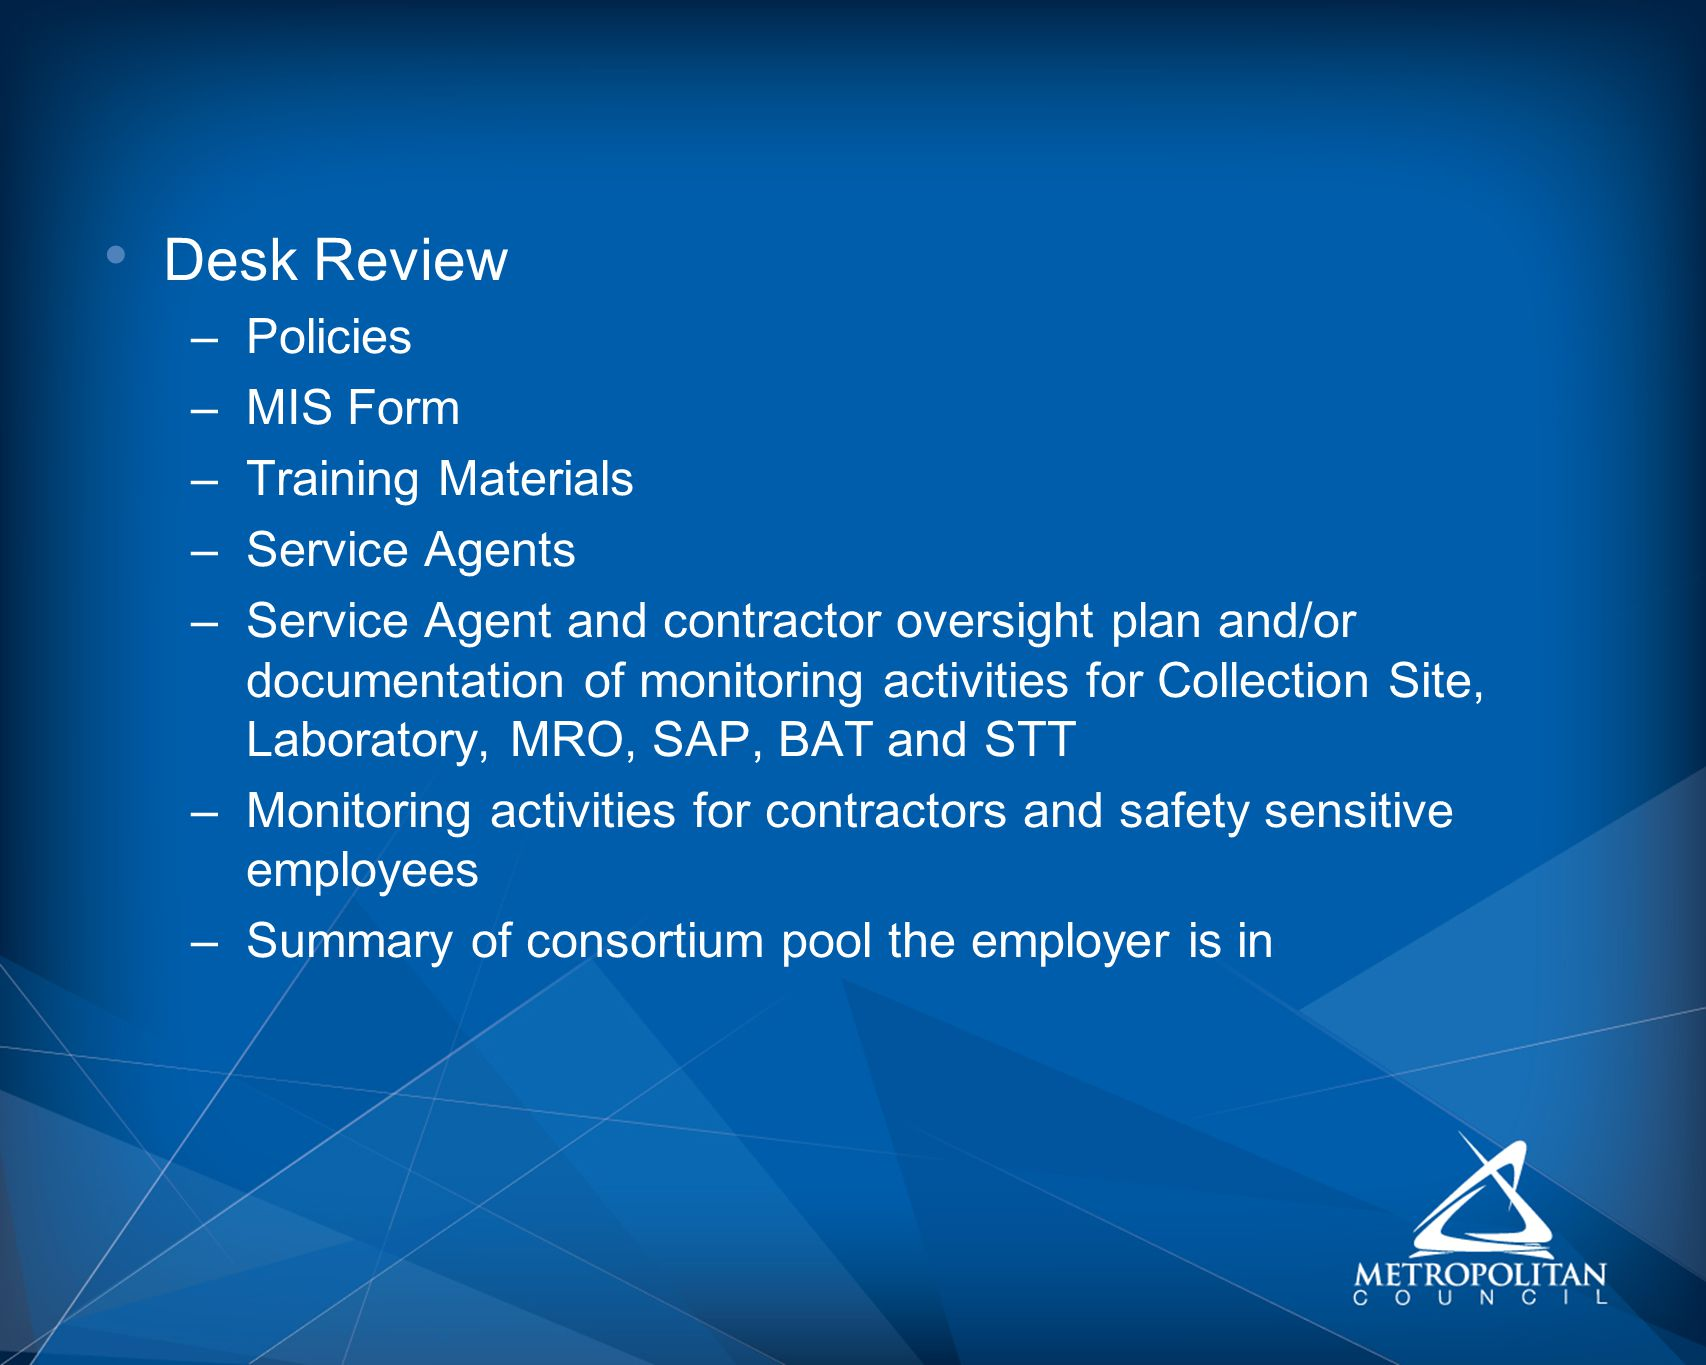 Desk Review –Policies –MIS Form –Training Materials –Service Agents –Service Agent and contractor oversight plan and/or documentation of monitoring activities for Collection Site, Laboratory, MRO, SAP, BAT and STT –Monitoring activities for contractors and safety sensitive employees –Summary of consortium pool the employer is in